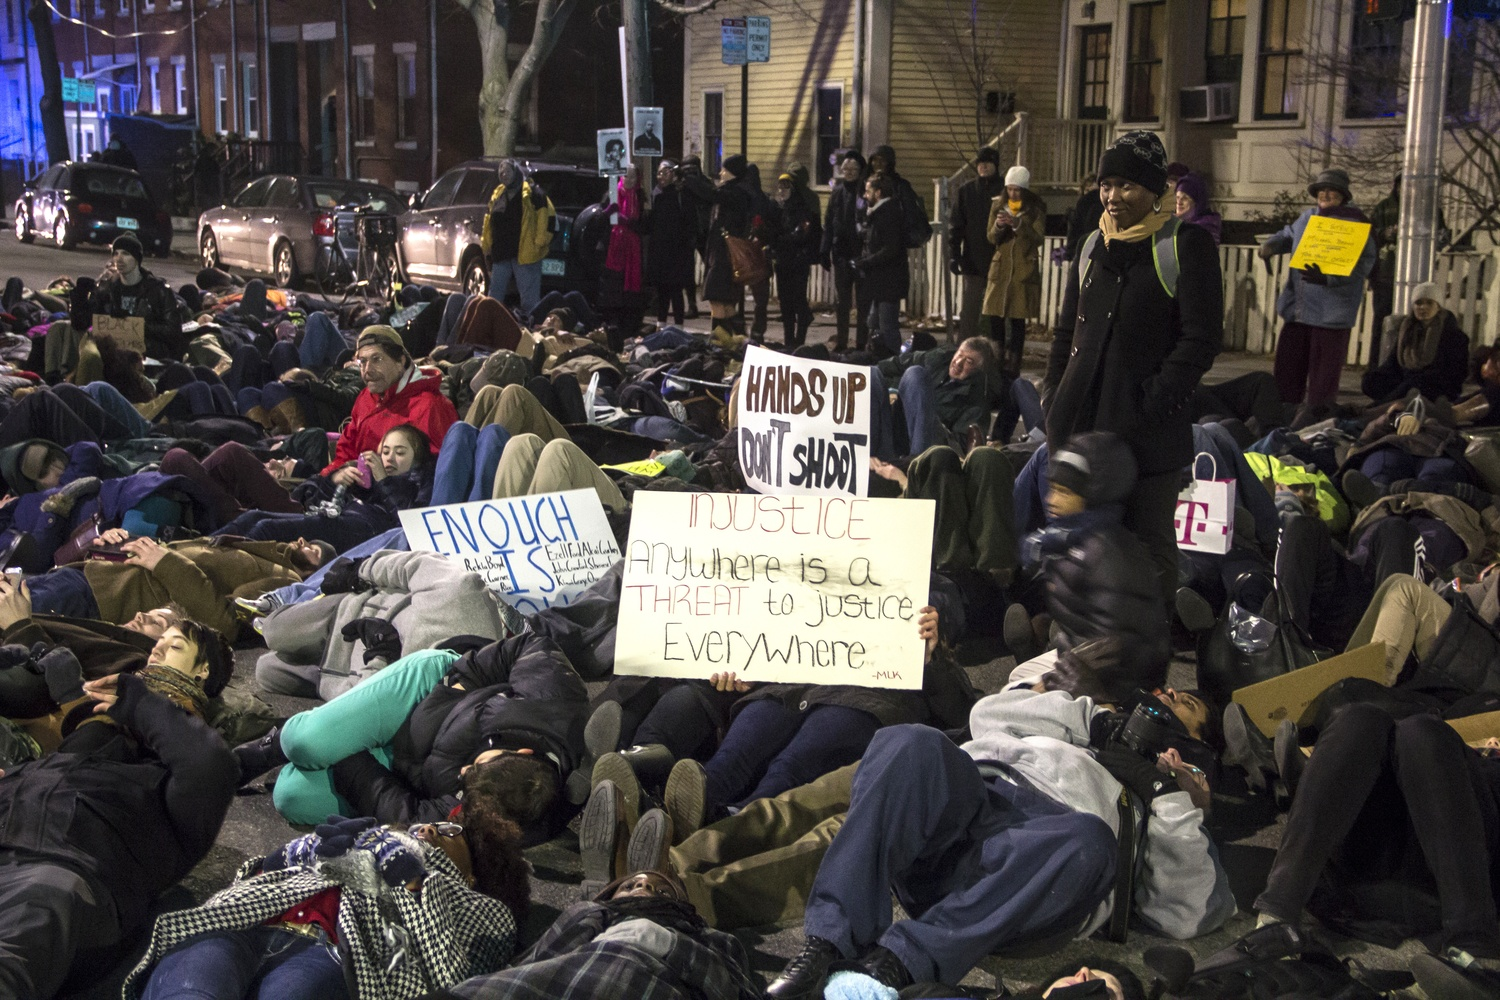 Protesters in the Black Lives Matter campaign staged die-ins around Central Square in January.